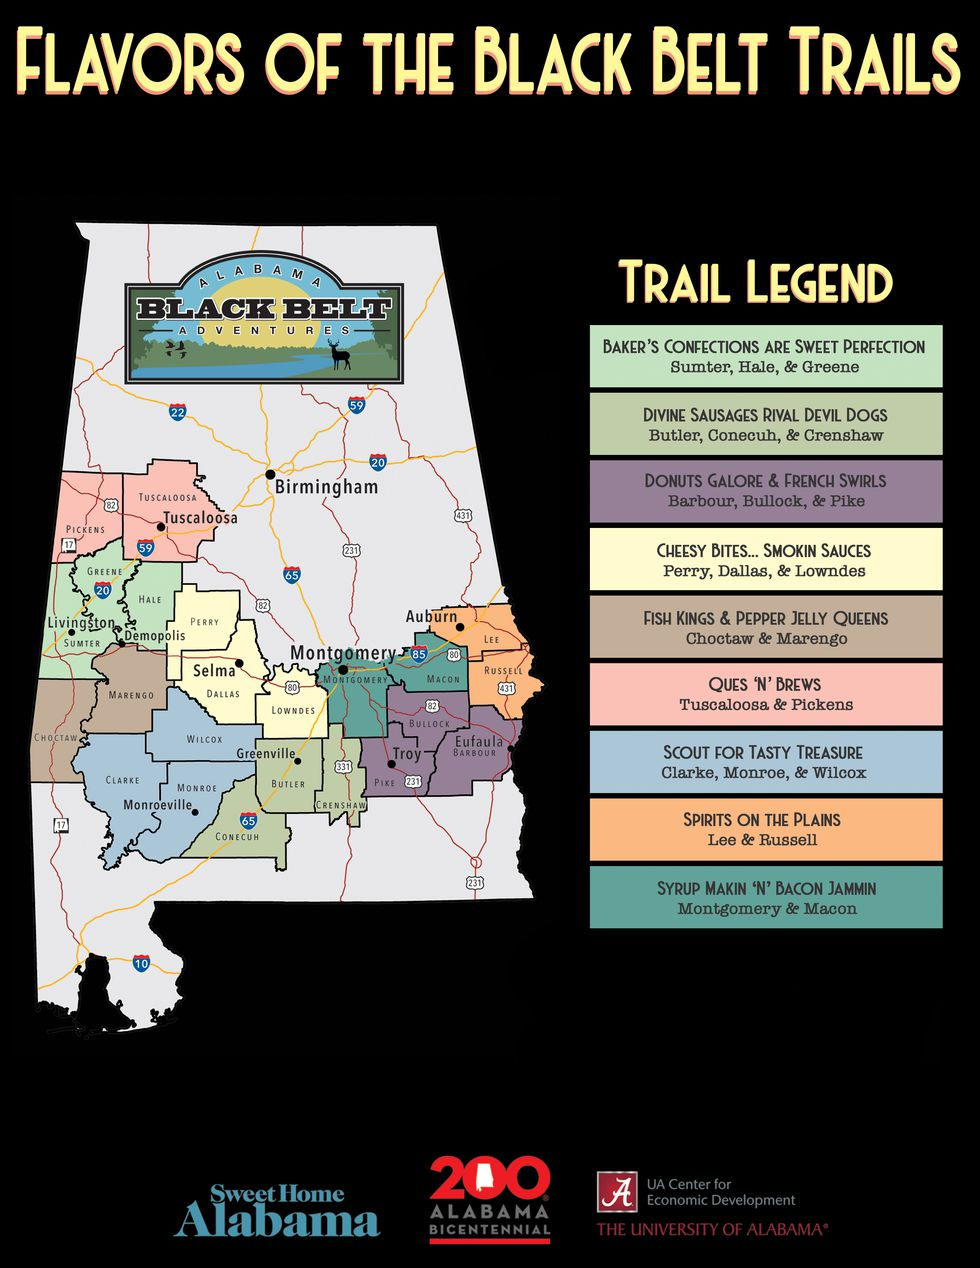 Themed Trails Launched to Highlight Flavors of the Black Belt